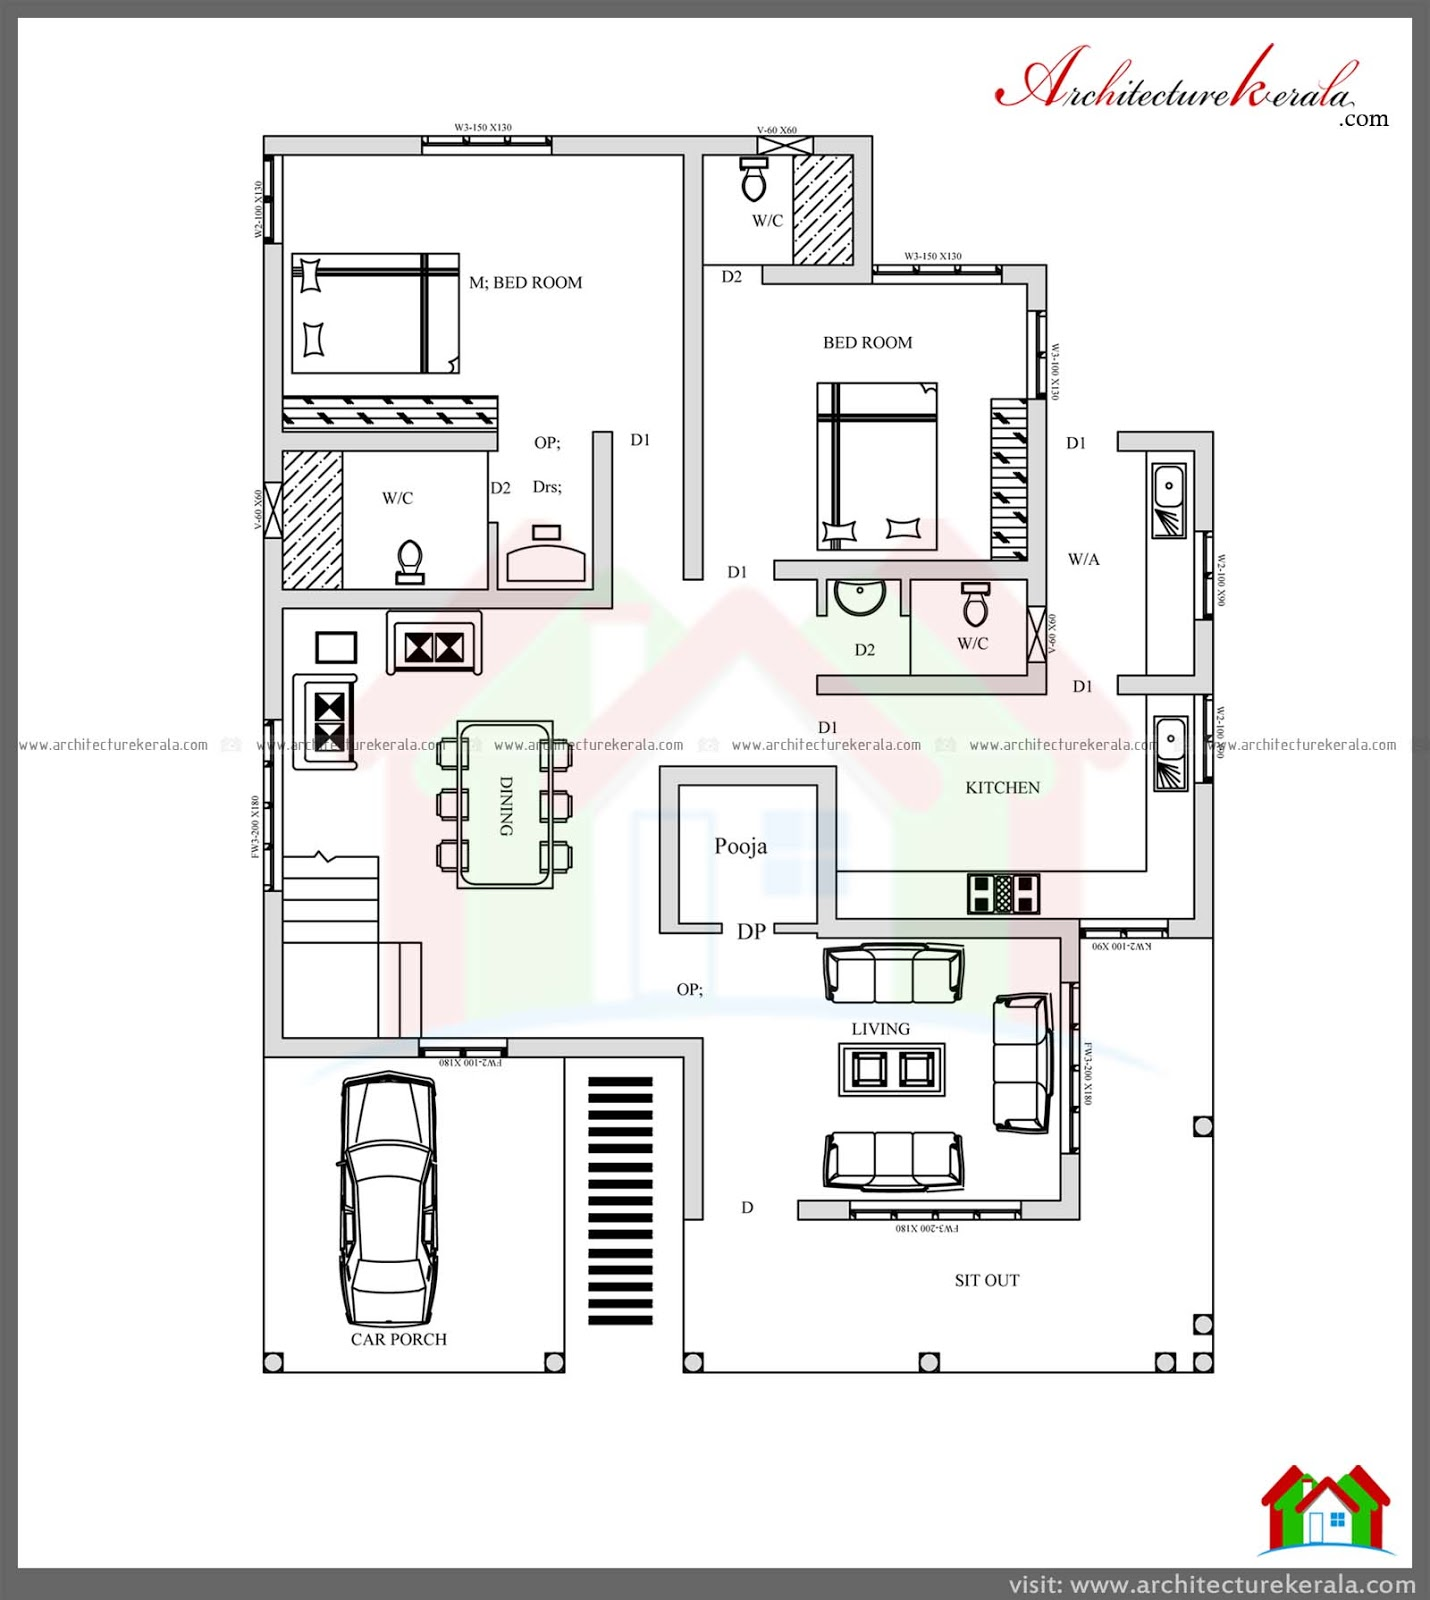 4 bed house plan with pooja room architecture kerala - Four room sets home design with detail ...